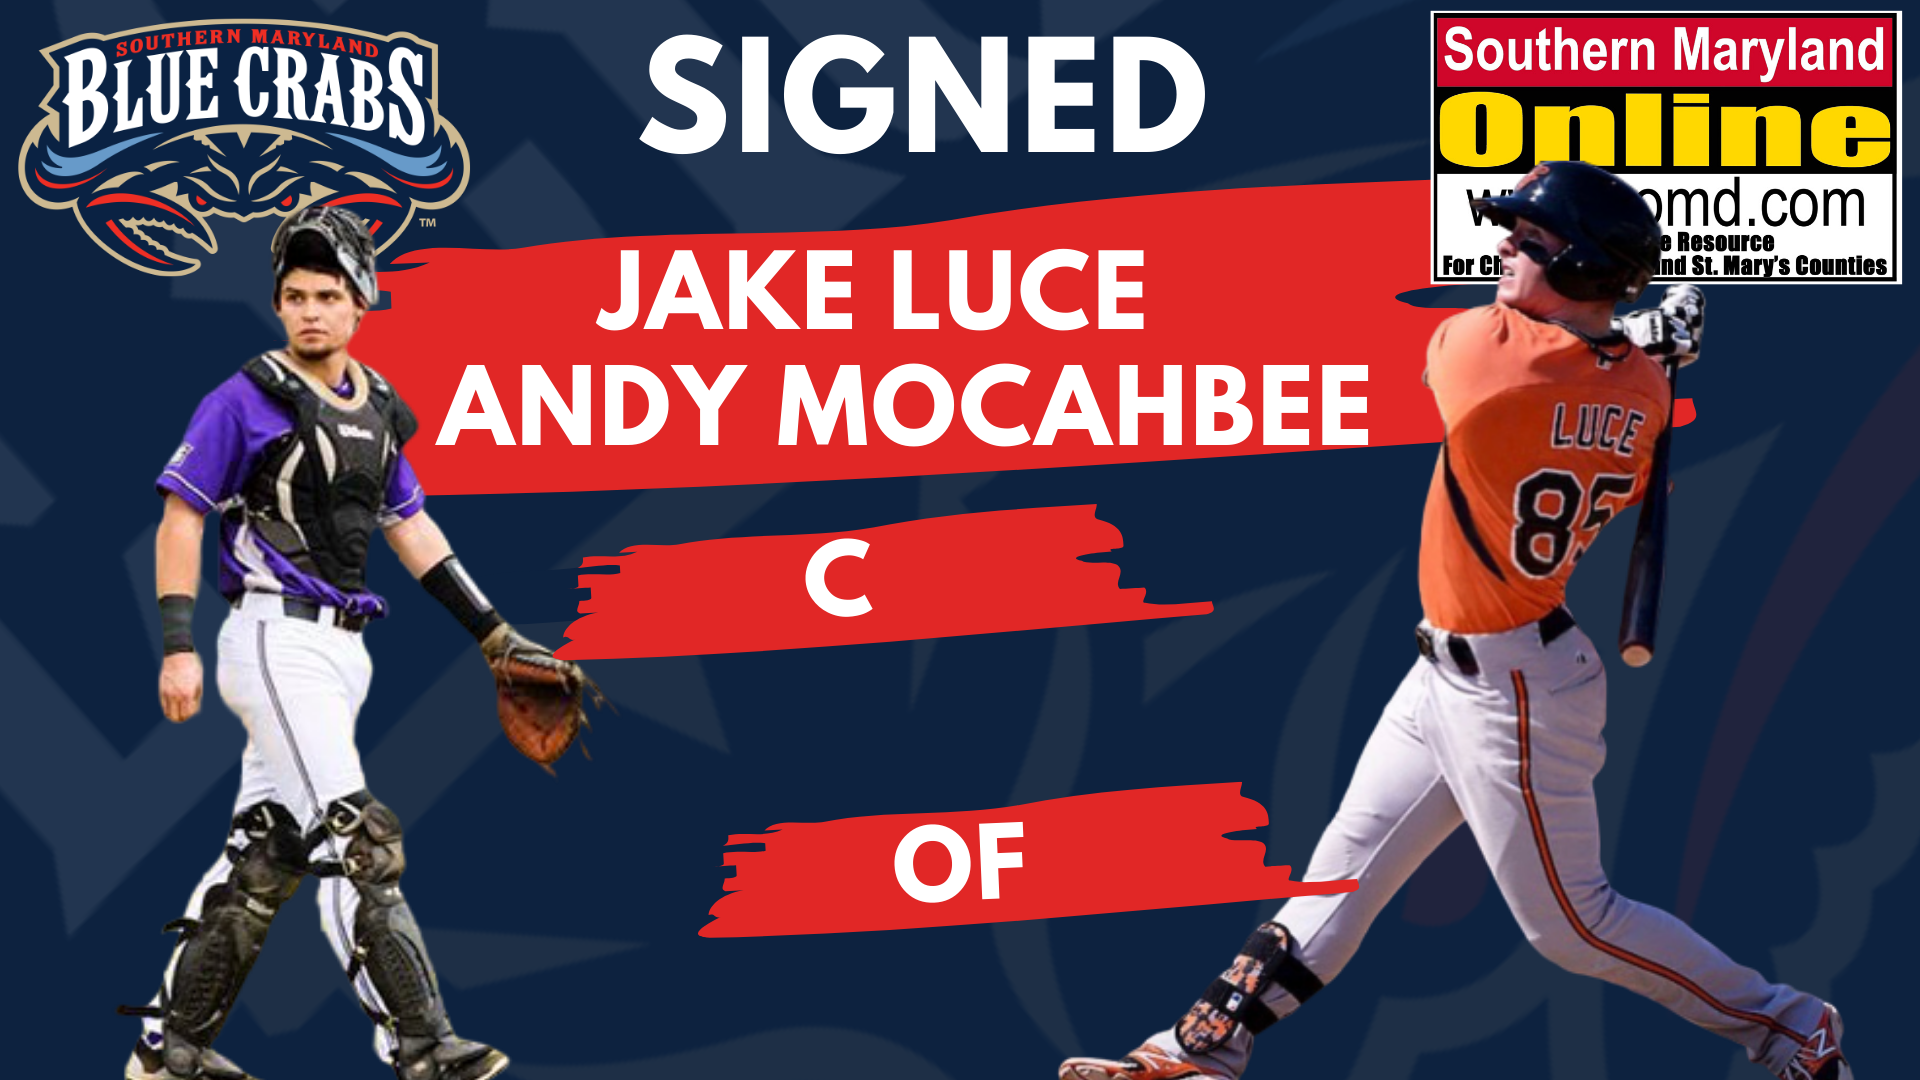 Blue Crabs Sign Founder of Luce Prospect Group, Jake Luce, and Andy Mocahbee